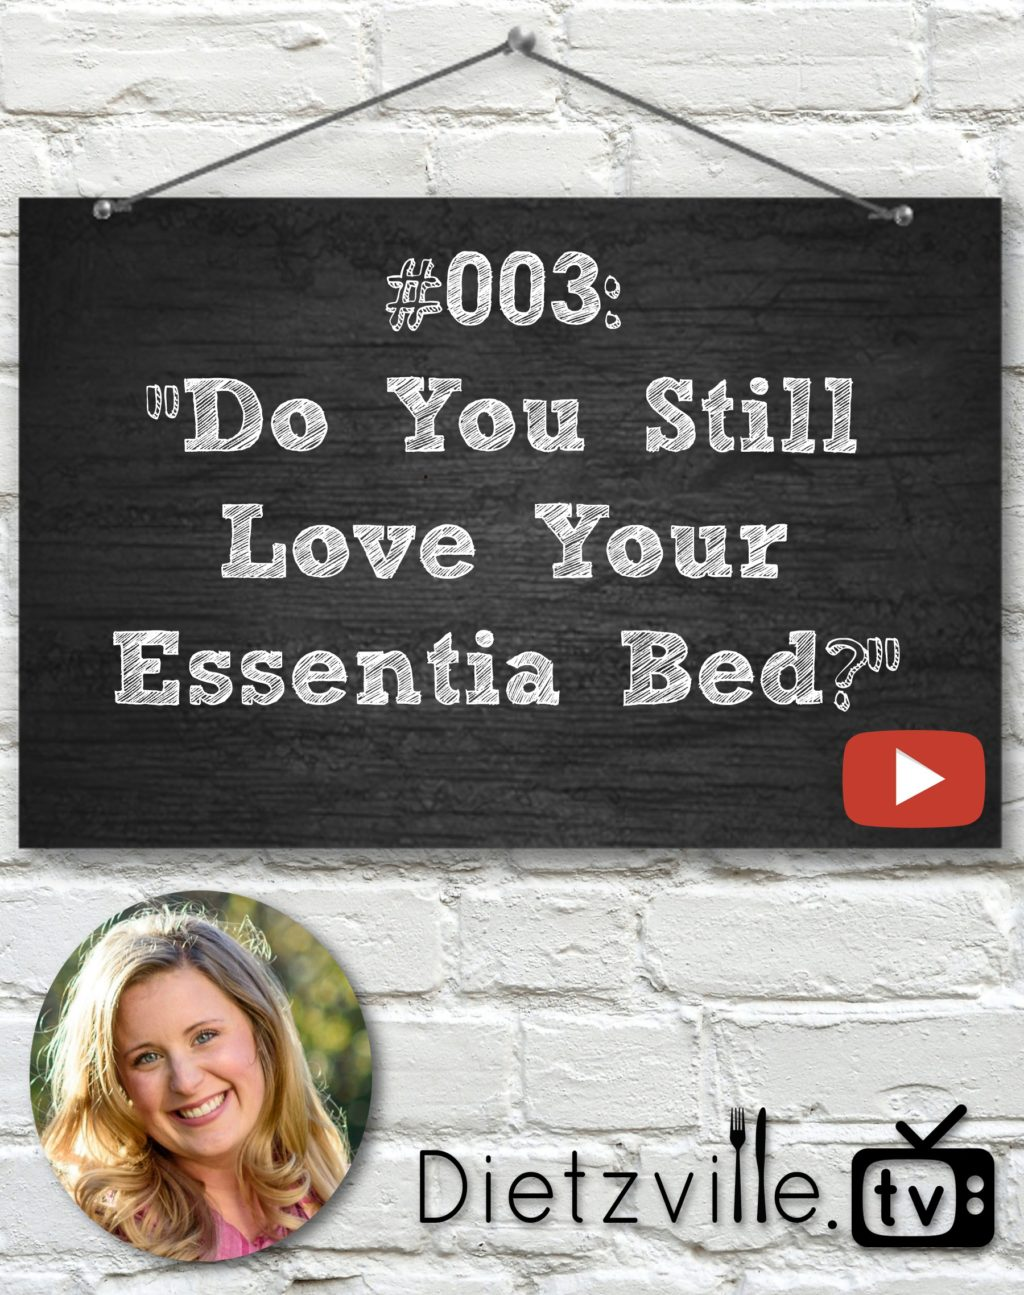 """Dietzville.TV #003: """"Do You Still Love Your Essentia Bed?"""" 